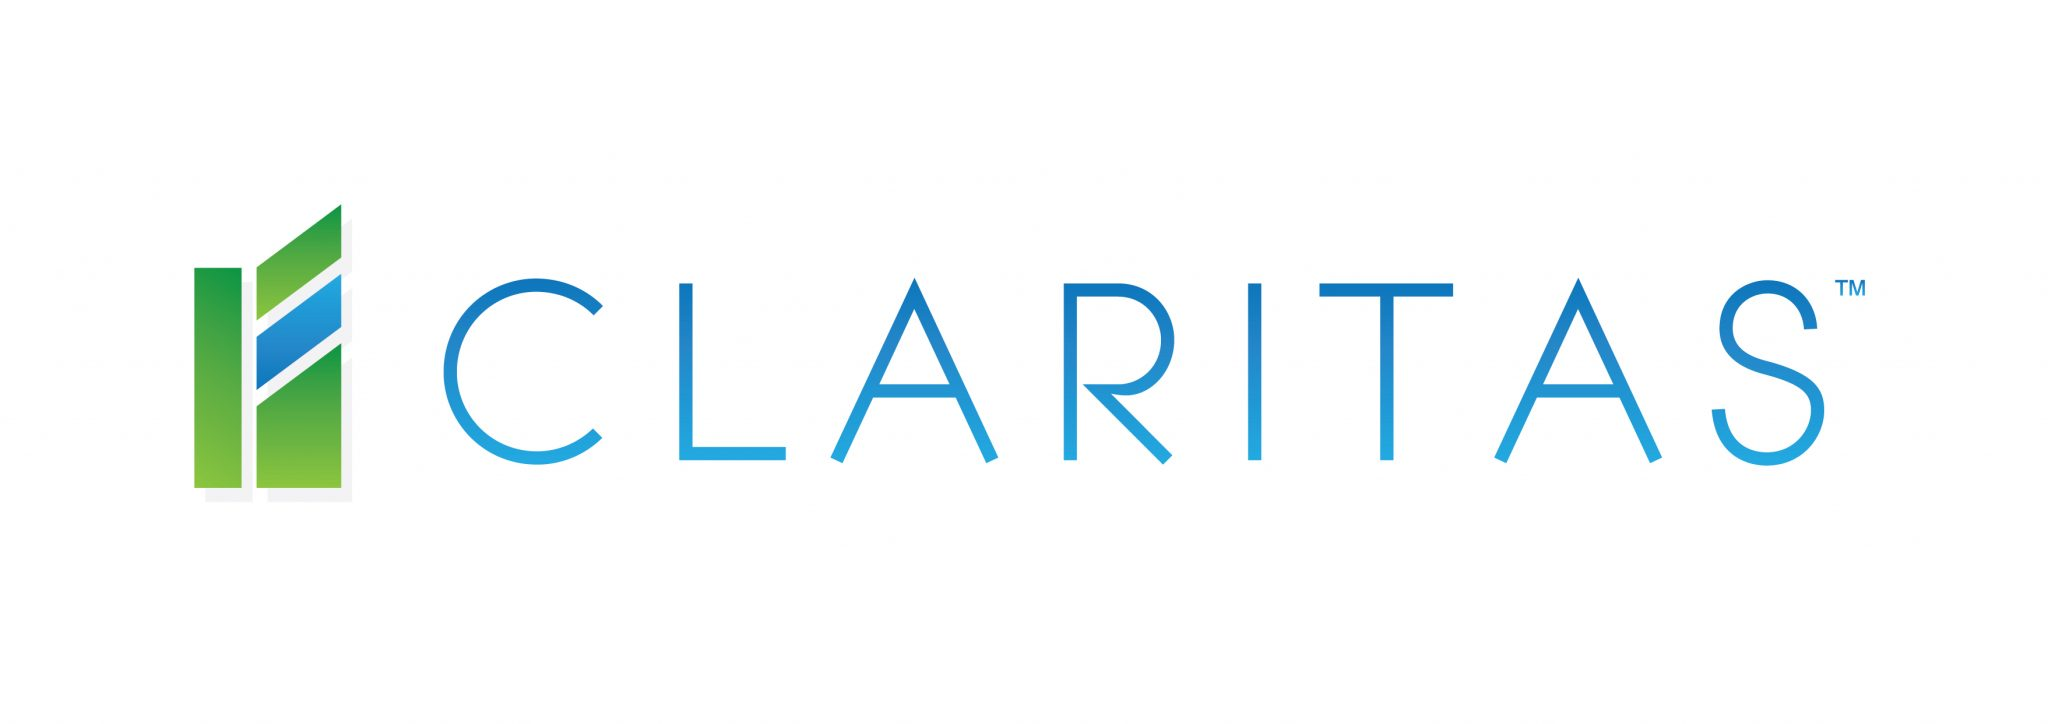 Financial Services | Our Specialist Teams | Claritas Europe